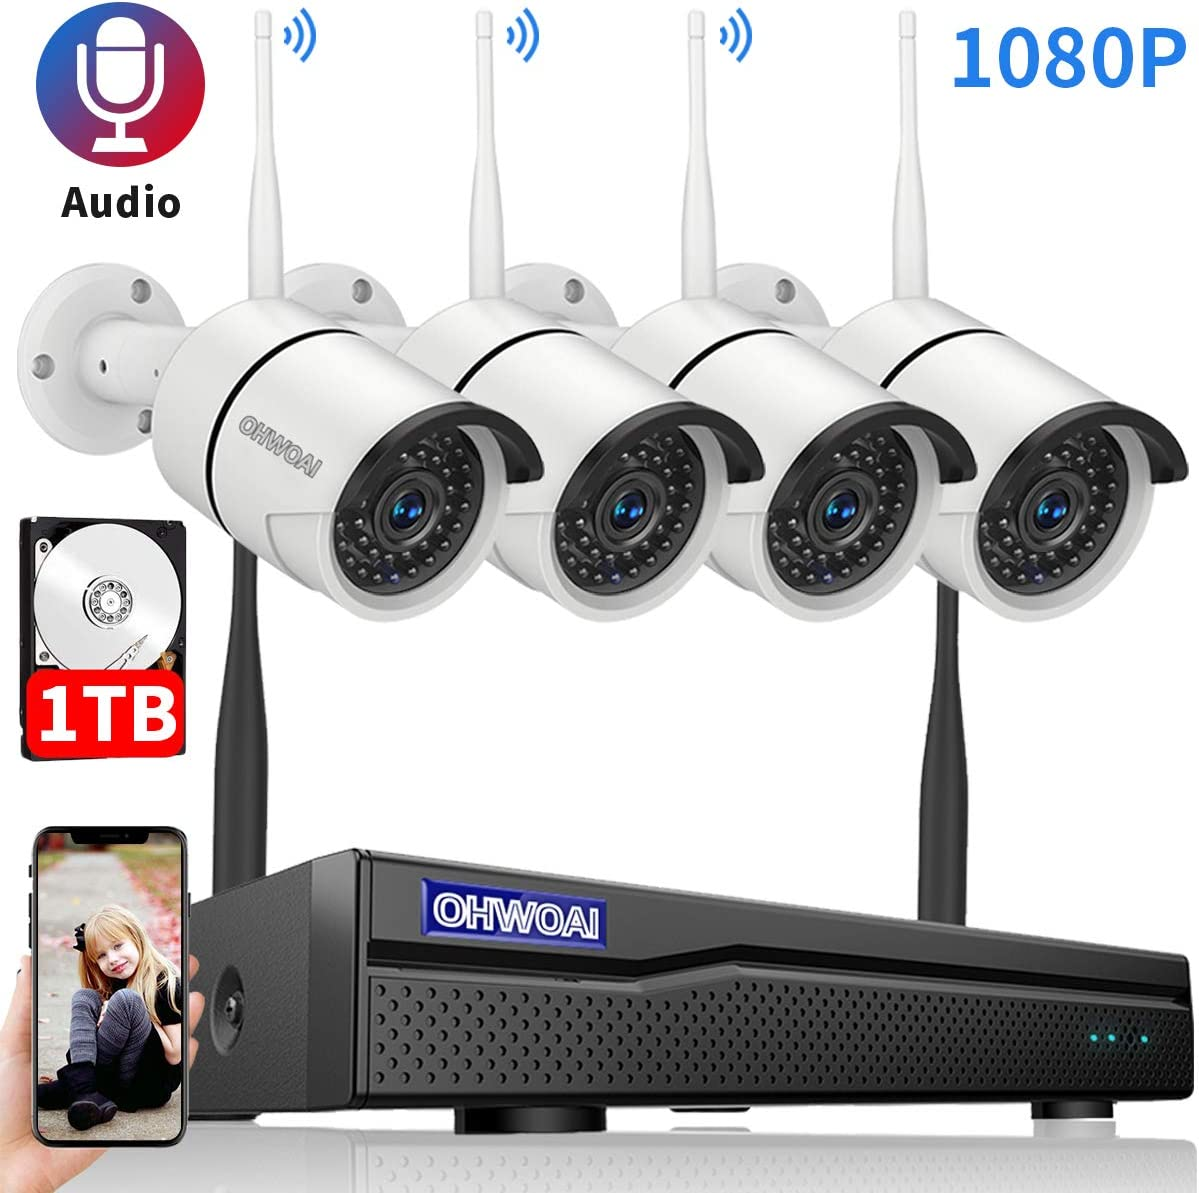 8CH Expandable.Audio Security Camera System Wireless Outdoor, 8 Channel 1080P NVR with 1TB Hard Drive, 4Pcs 1080P CCTV Cameras for Home,OHWOAI Surveillance Video Security System,Outdoor IP Cameras